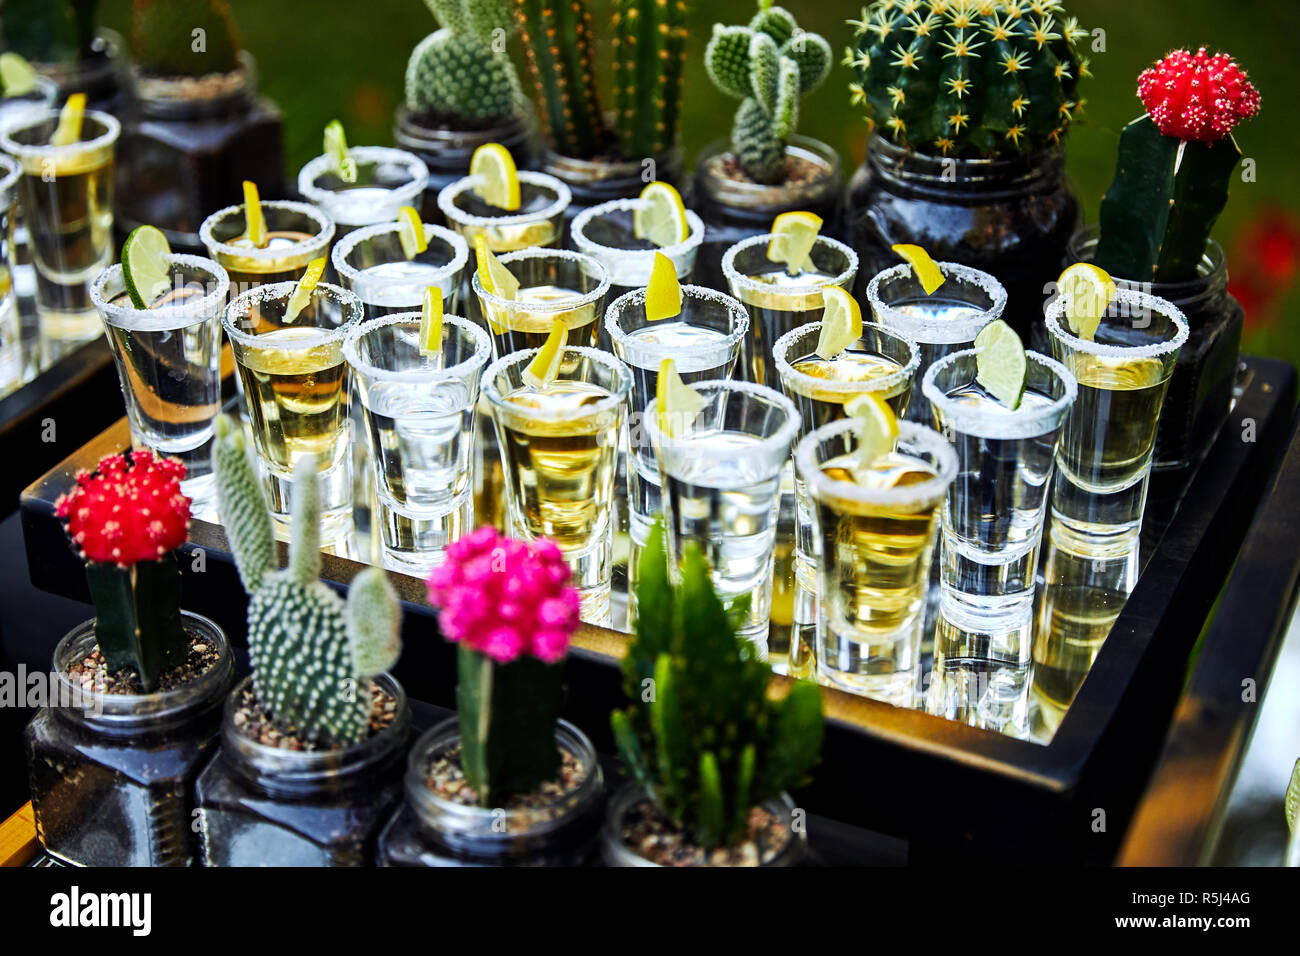 Page 2 Tequila Bottle High Resolution Stock Photography And Images Alamy